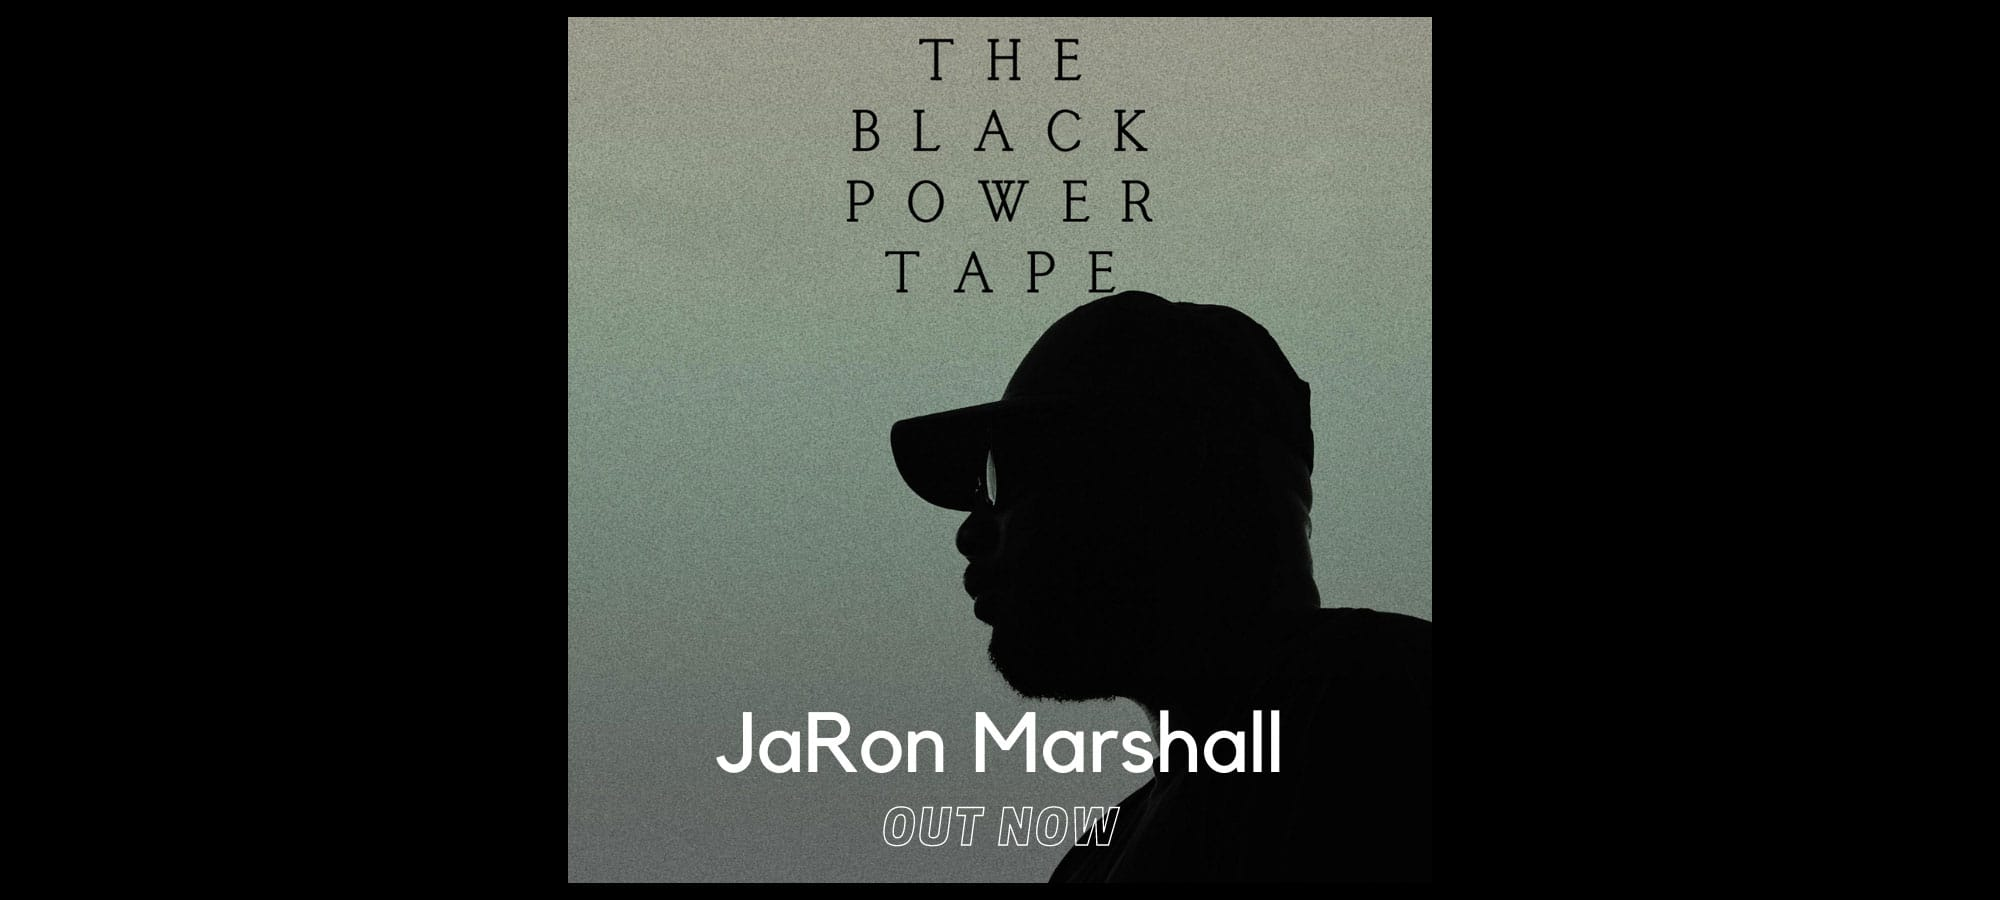 Listen to Jaron Marshall 's new EP The Black Power Tape - soulful jazz EP